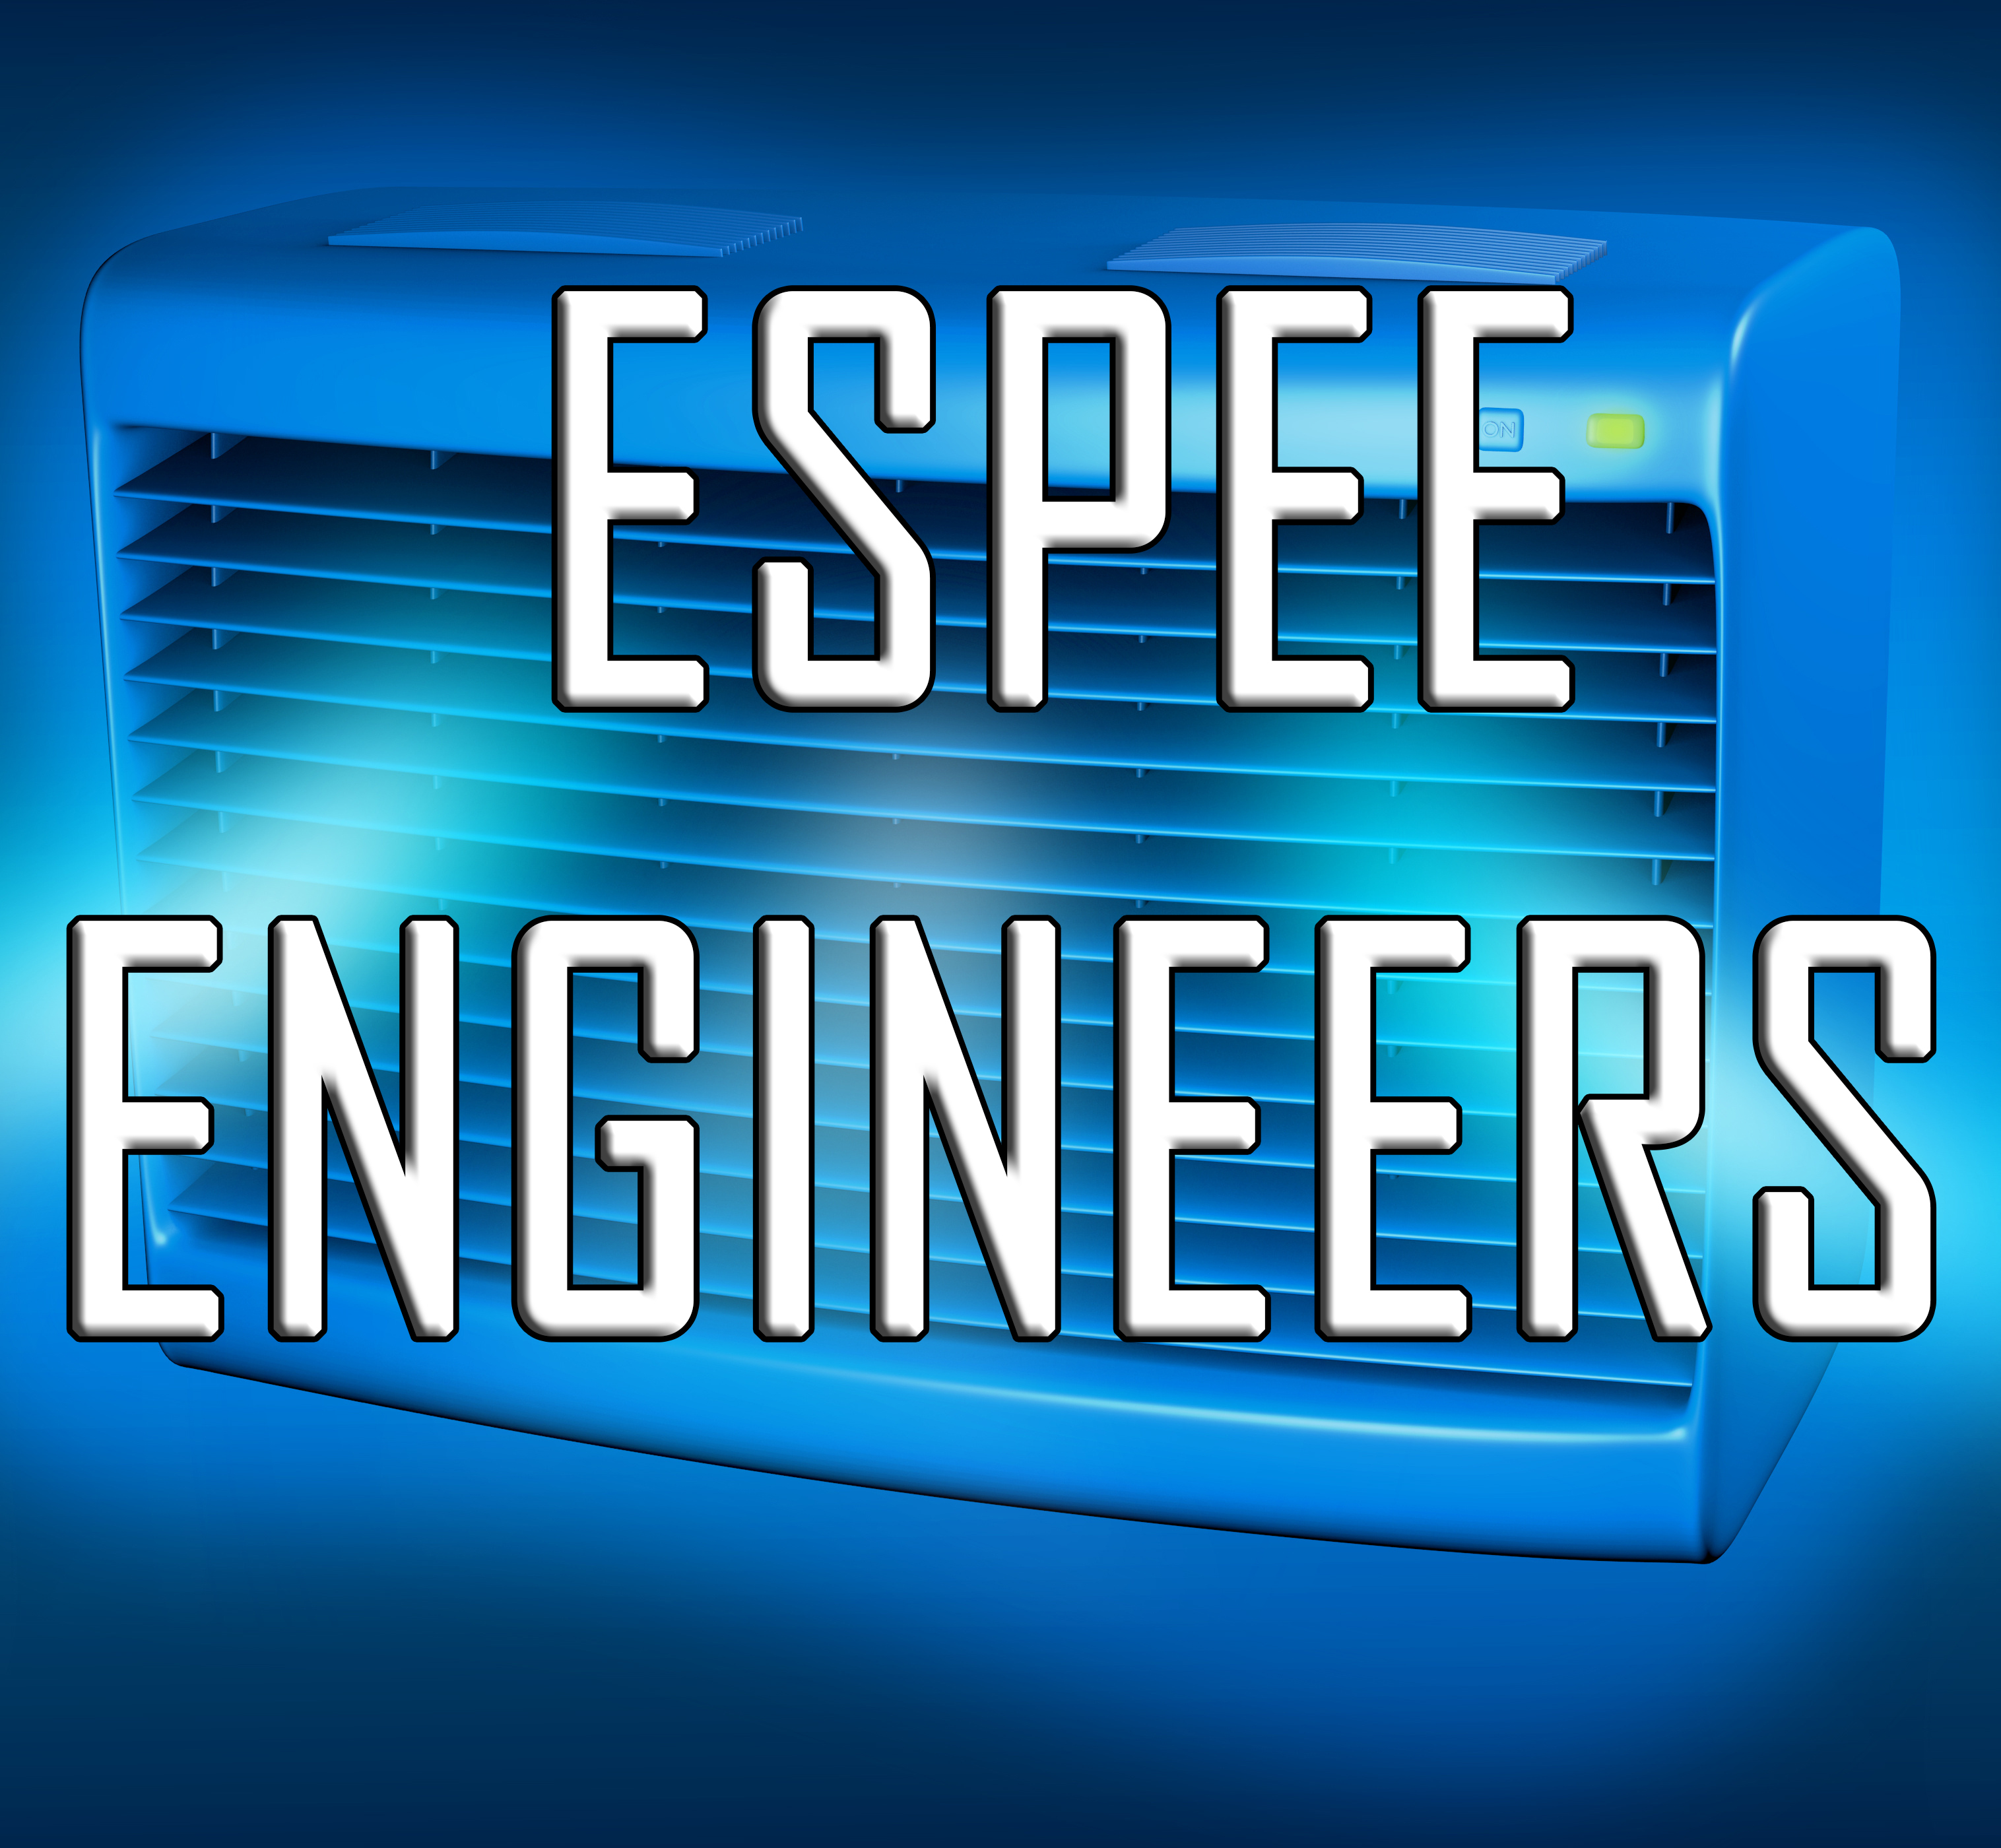 Espee Engineers Veyangoda Air Conditioning Service Electrical Engineering In Refrigeration And Posted On December 15 2017 377